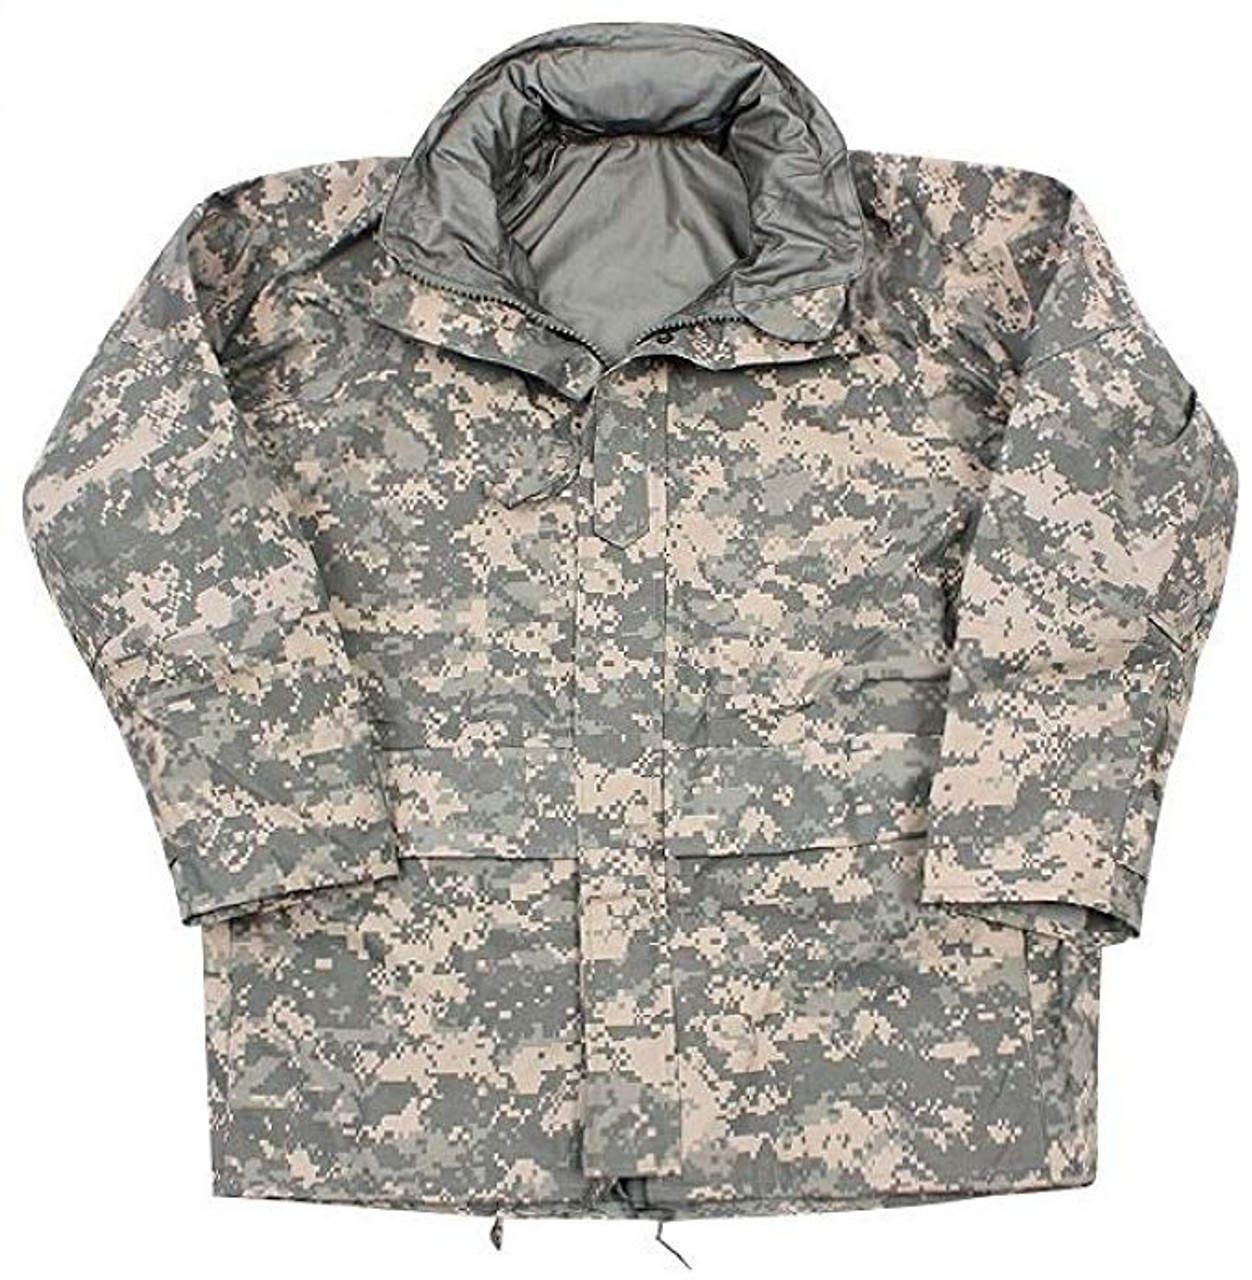 Government Contractor GI ECWCS Generation II ACU Goretex Parka Cold Weather Parka Size XL